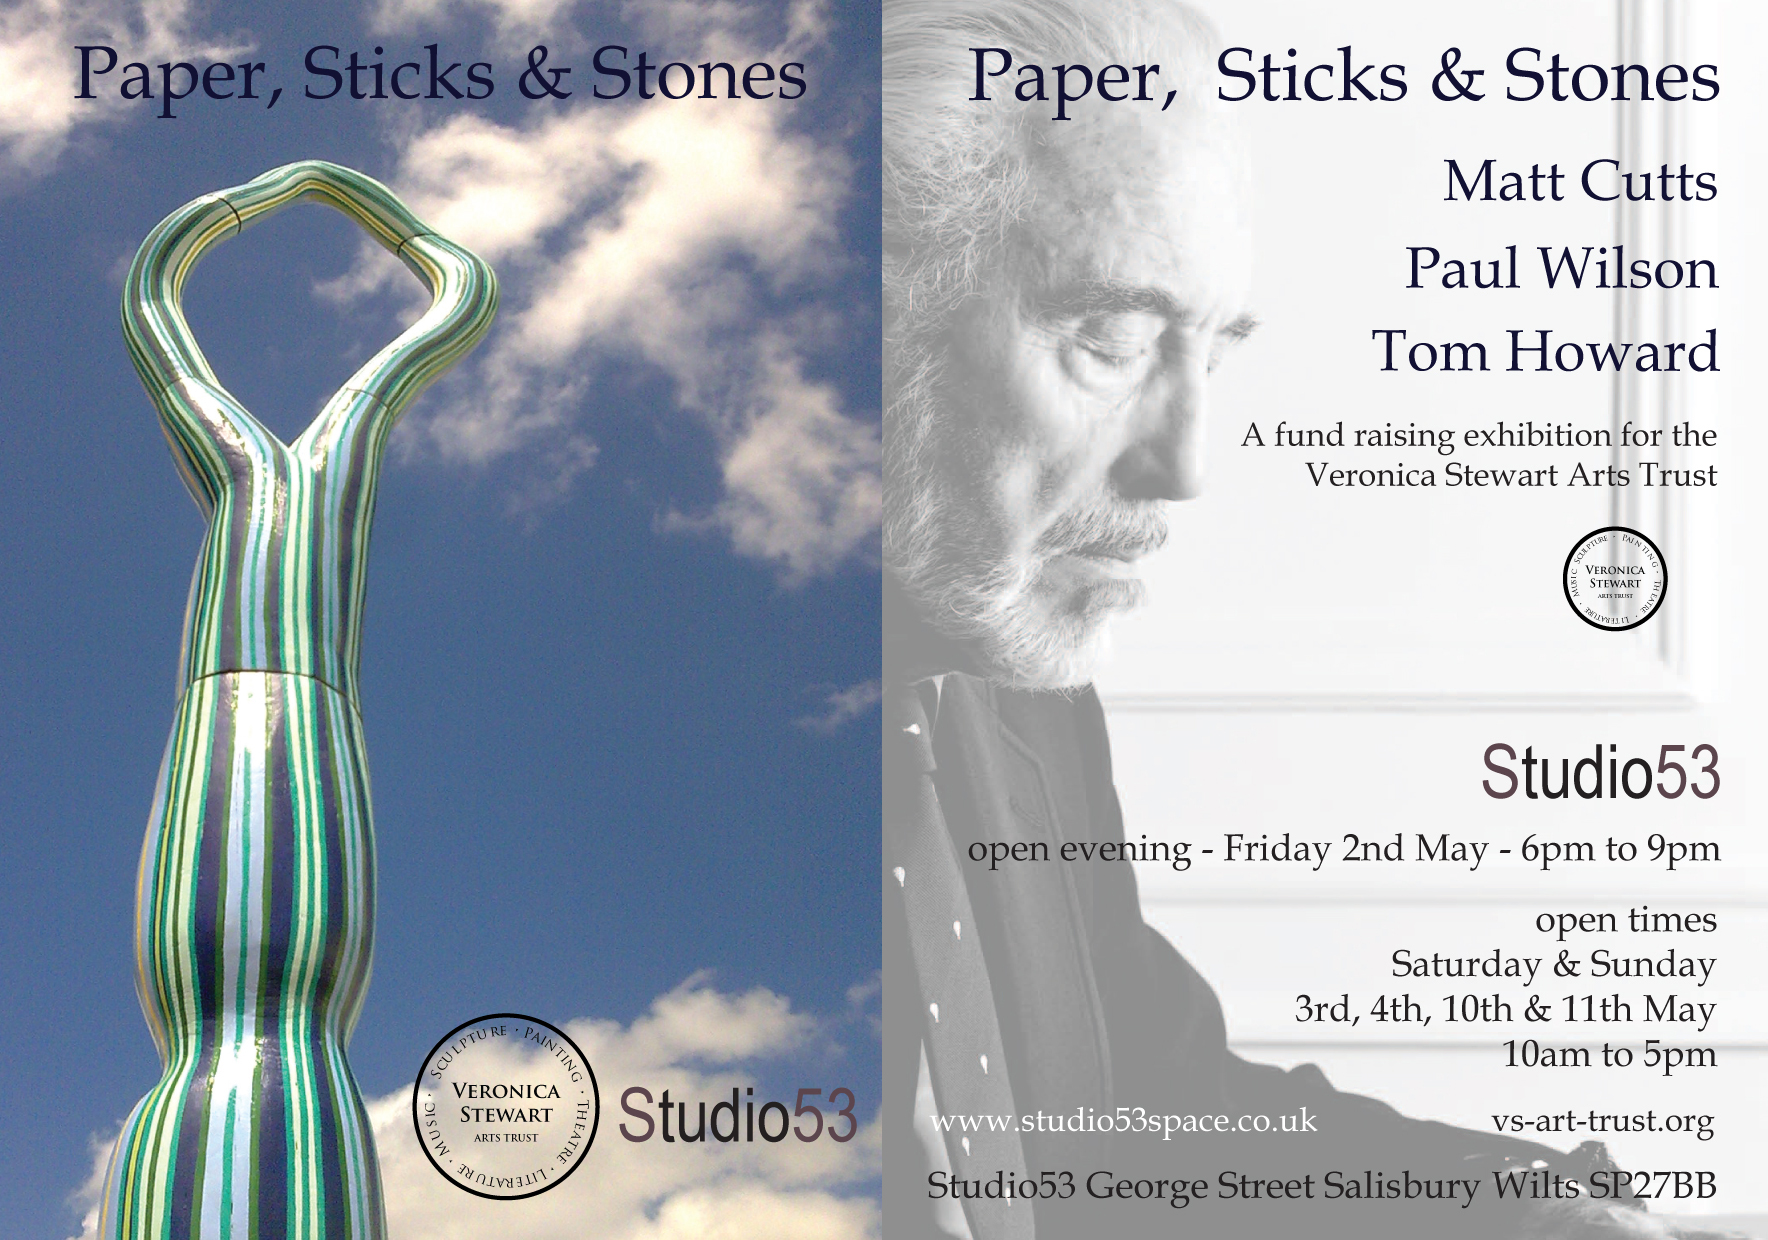 Paper-sticks-and-stones-Exhibition--Studio53space-2014-two-pages.jpg